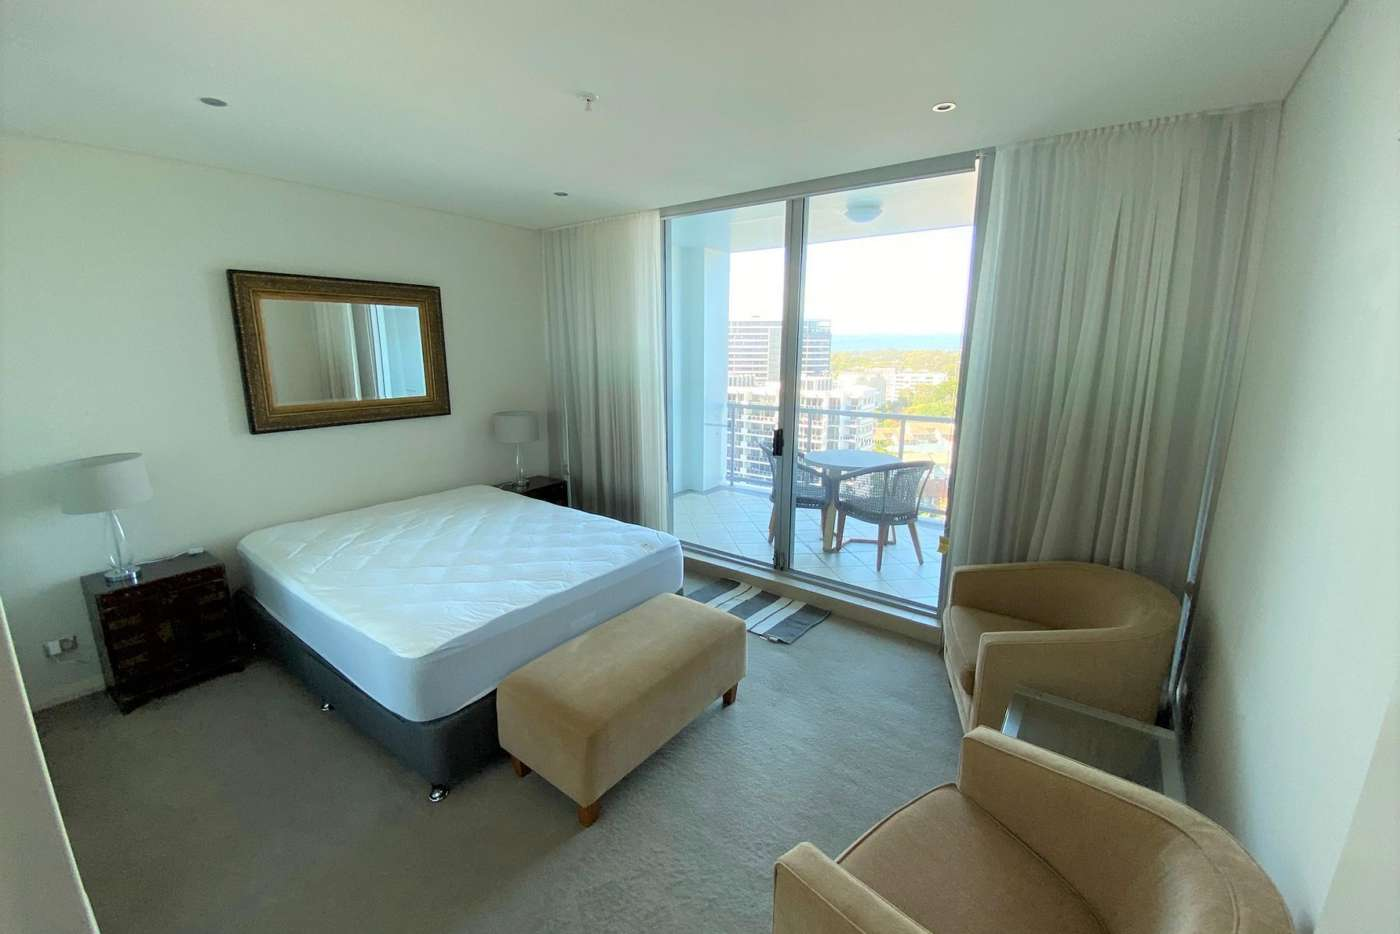 Sixth view of Homely apartment listing, Unit 1701/1 Como Crescent, Southport QLD 4215